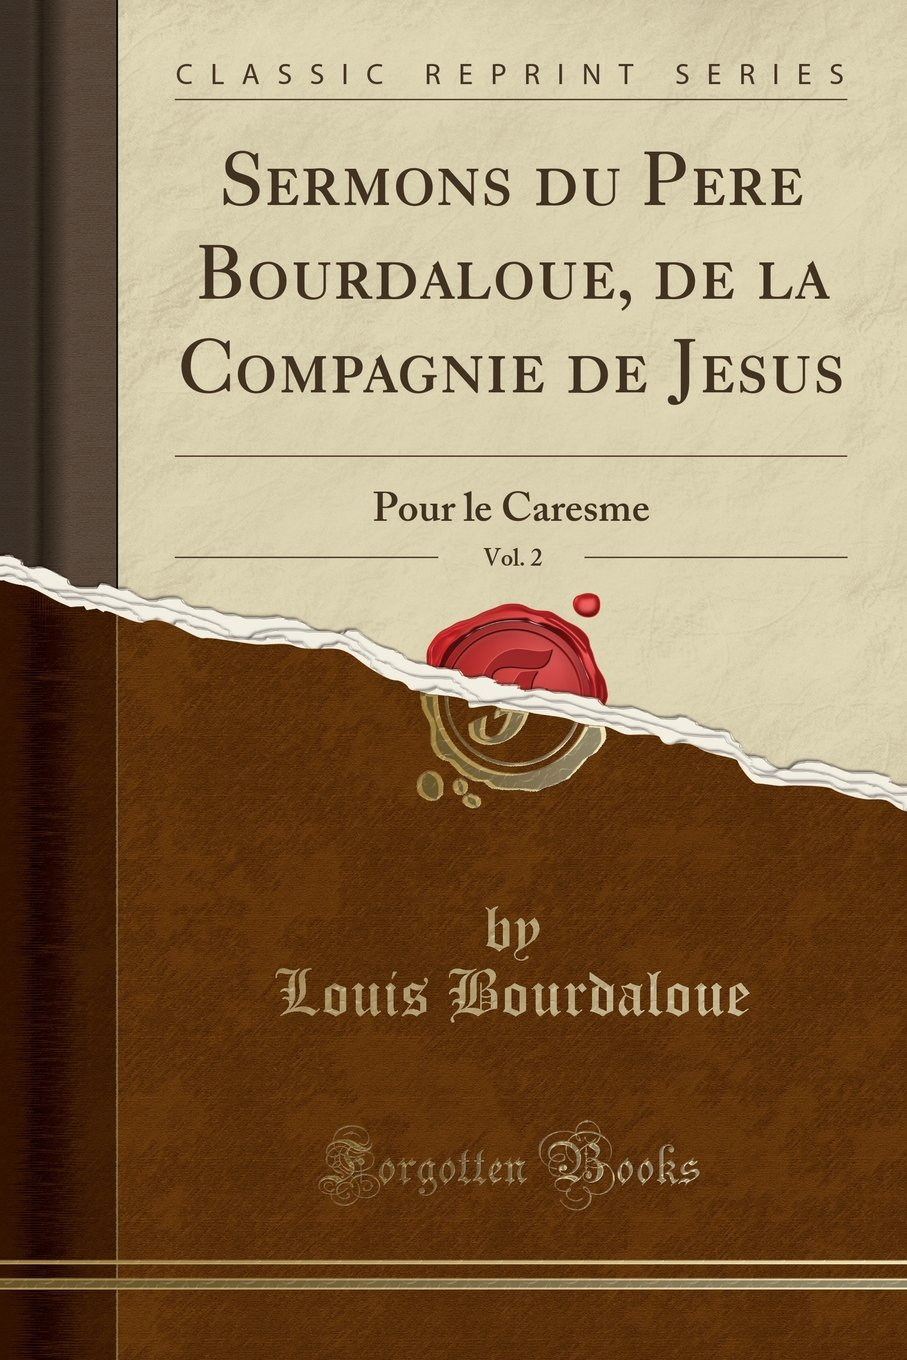 Sermons du Pere Bourdaloue, de la Compagnie de Jesus, Vol. 2: Pour le Caresme (Classic Reprint) (French Edition) ebook